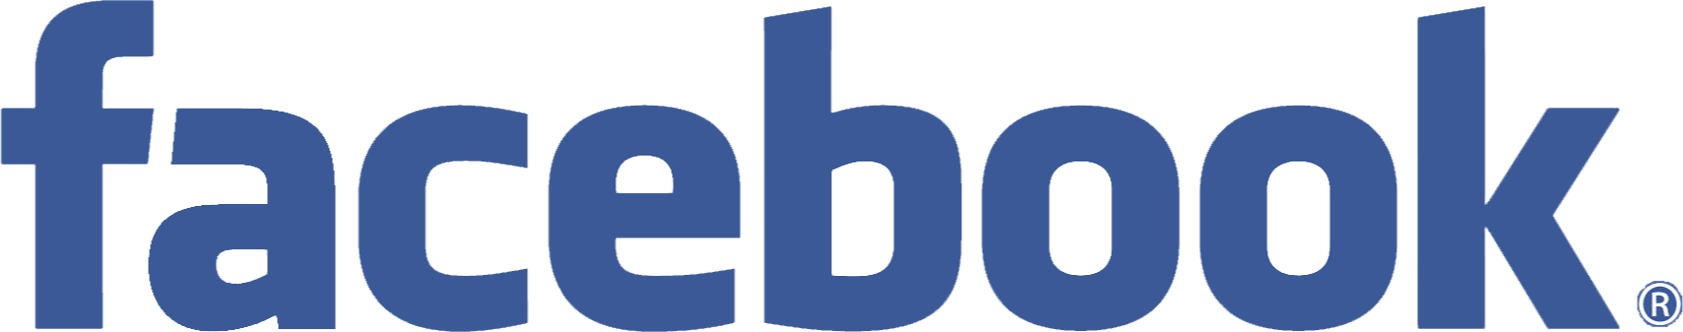 tech-facebook logo